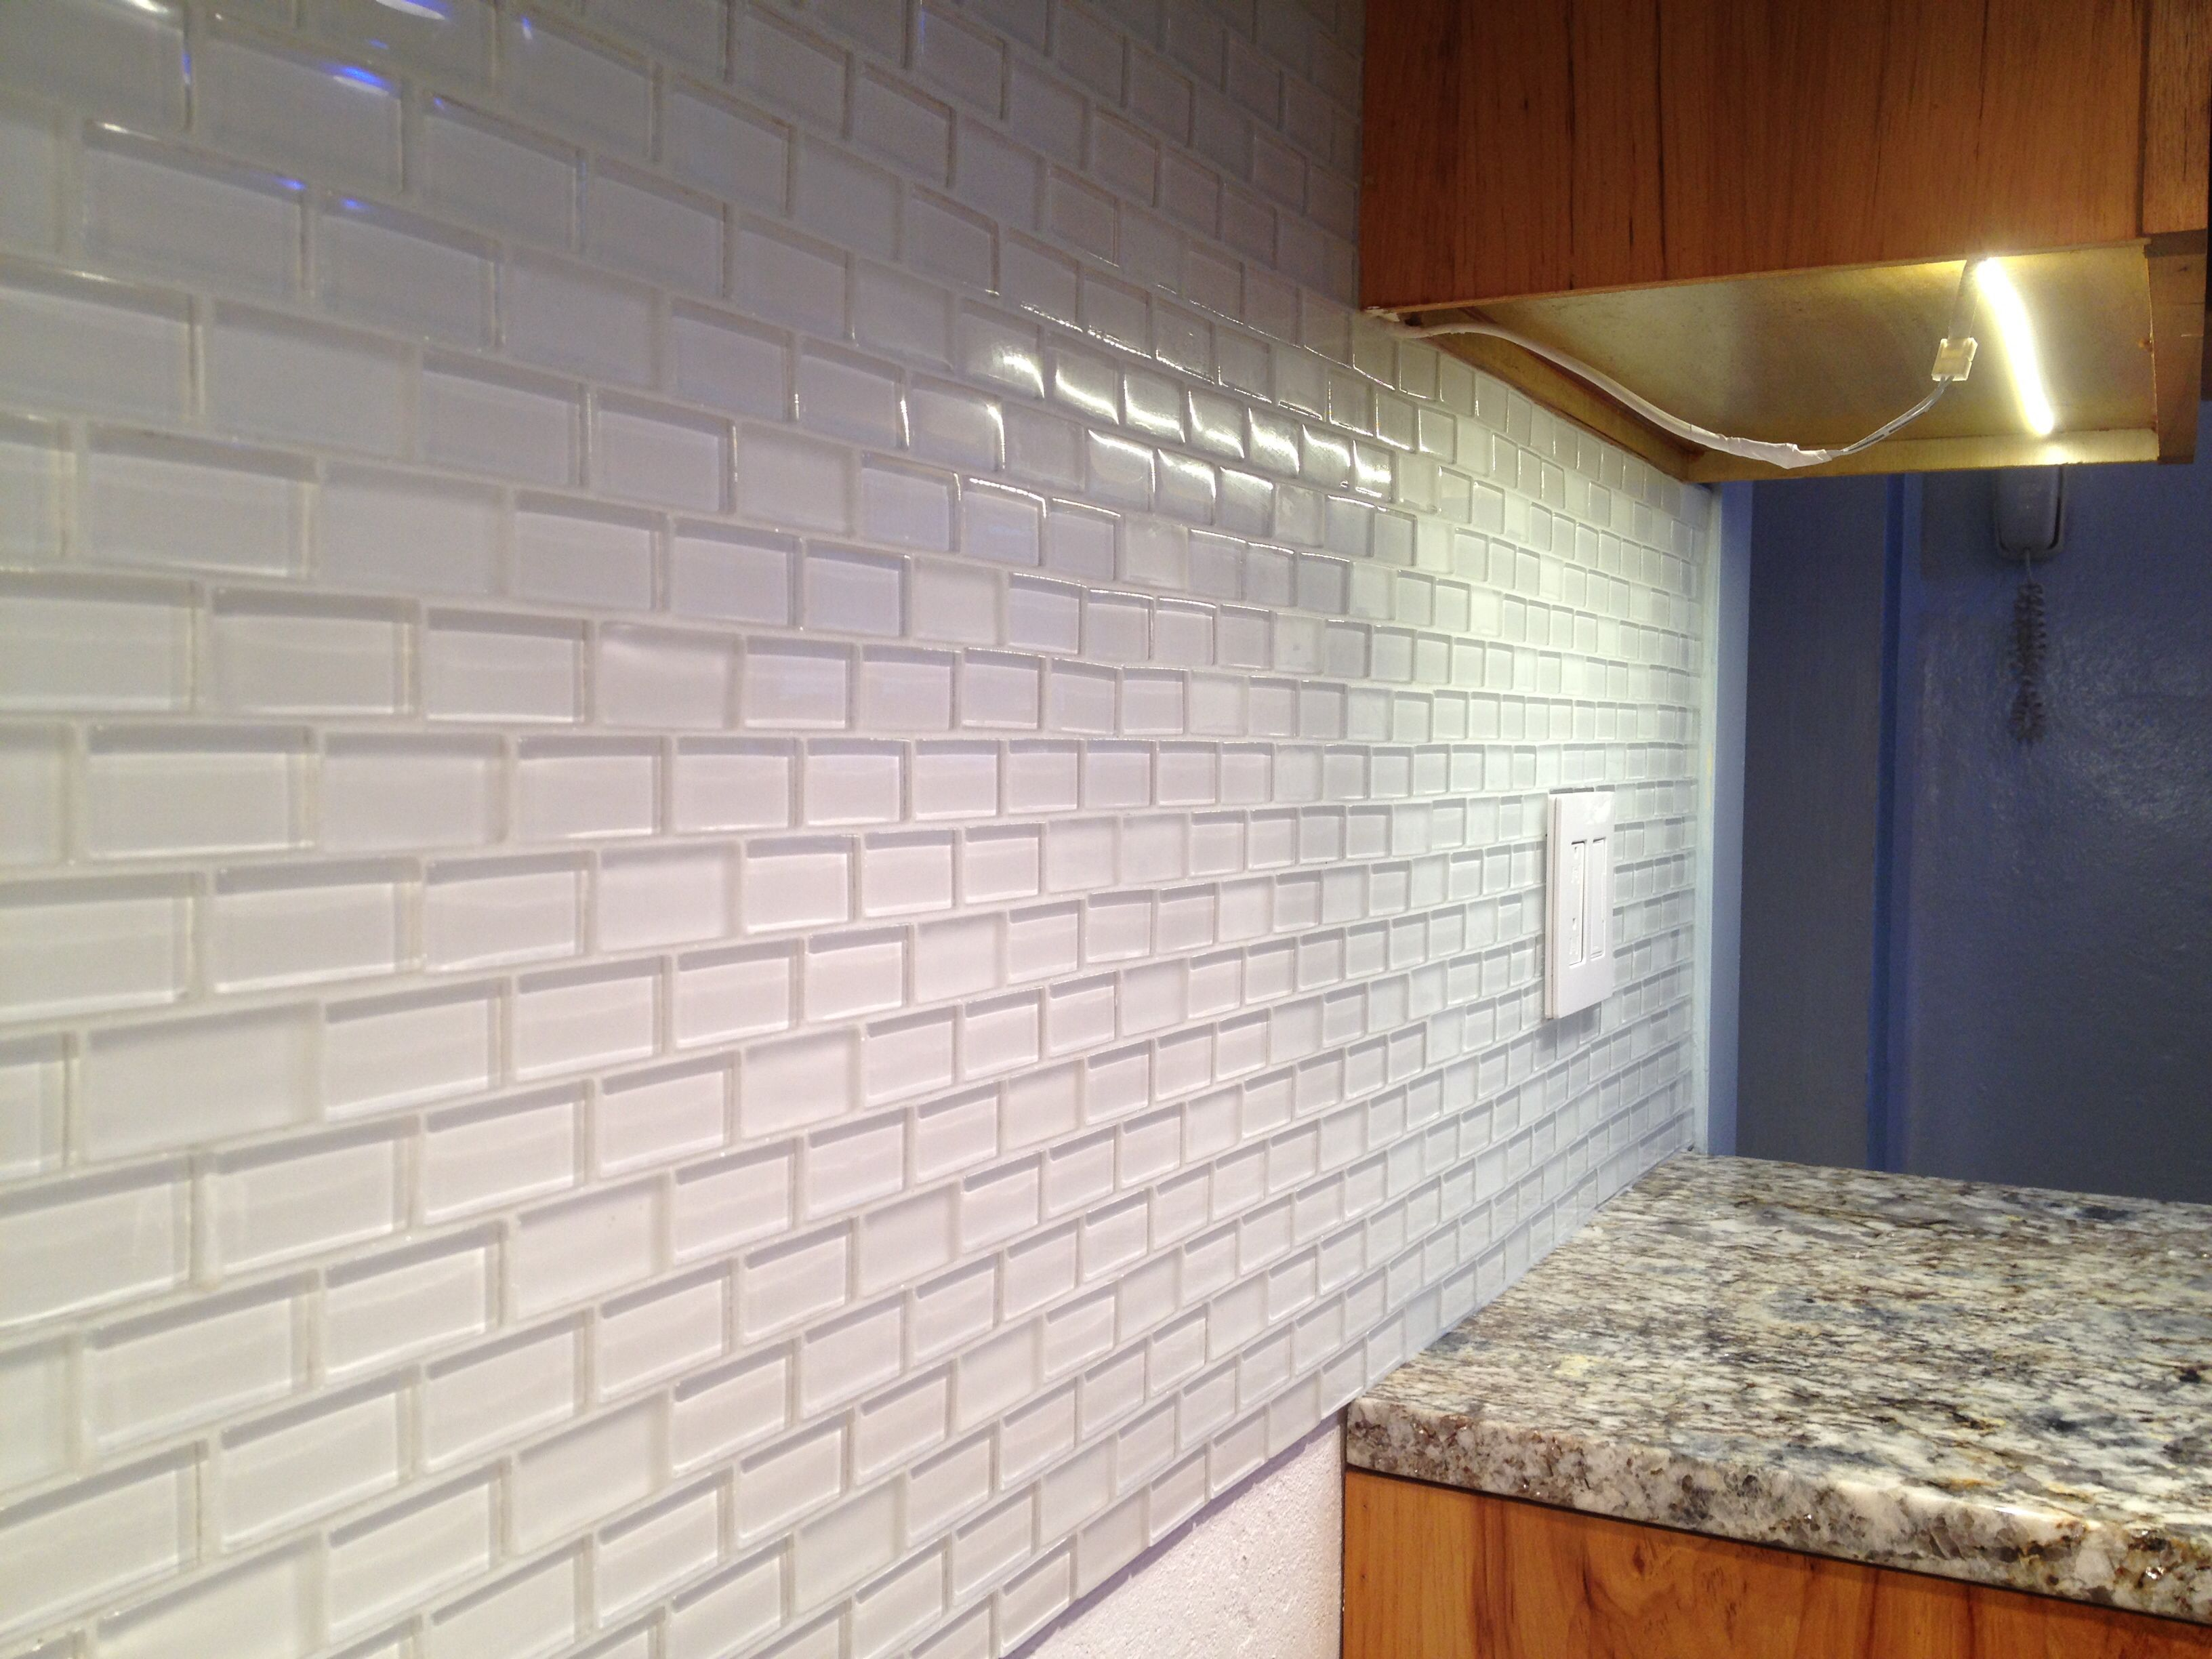 1x2 Glass Tile By Pure In Snow Brick Mix Color Set With